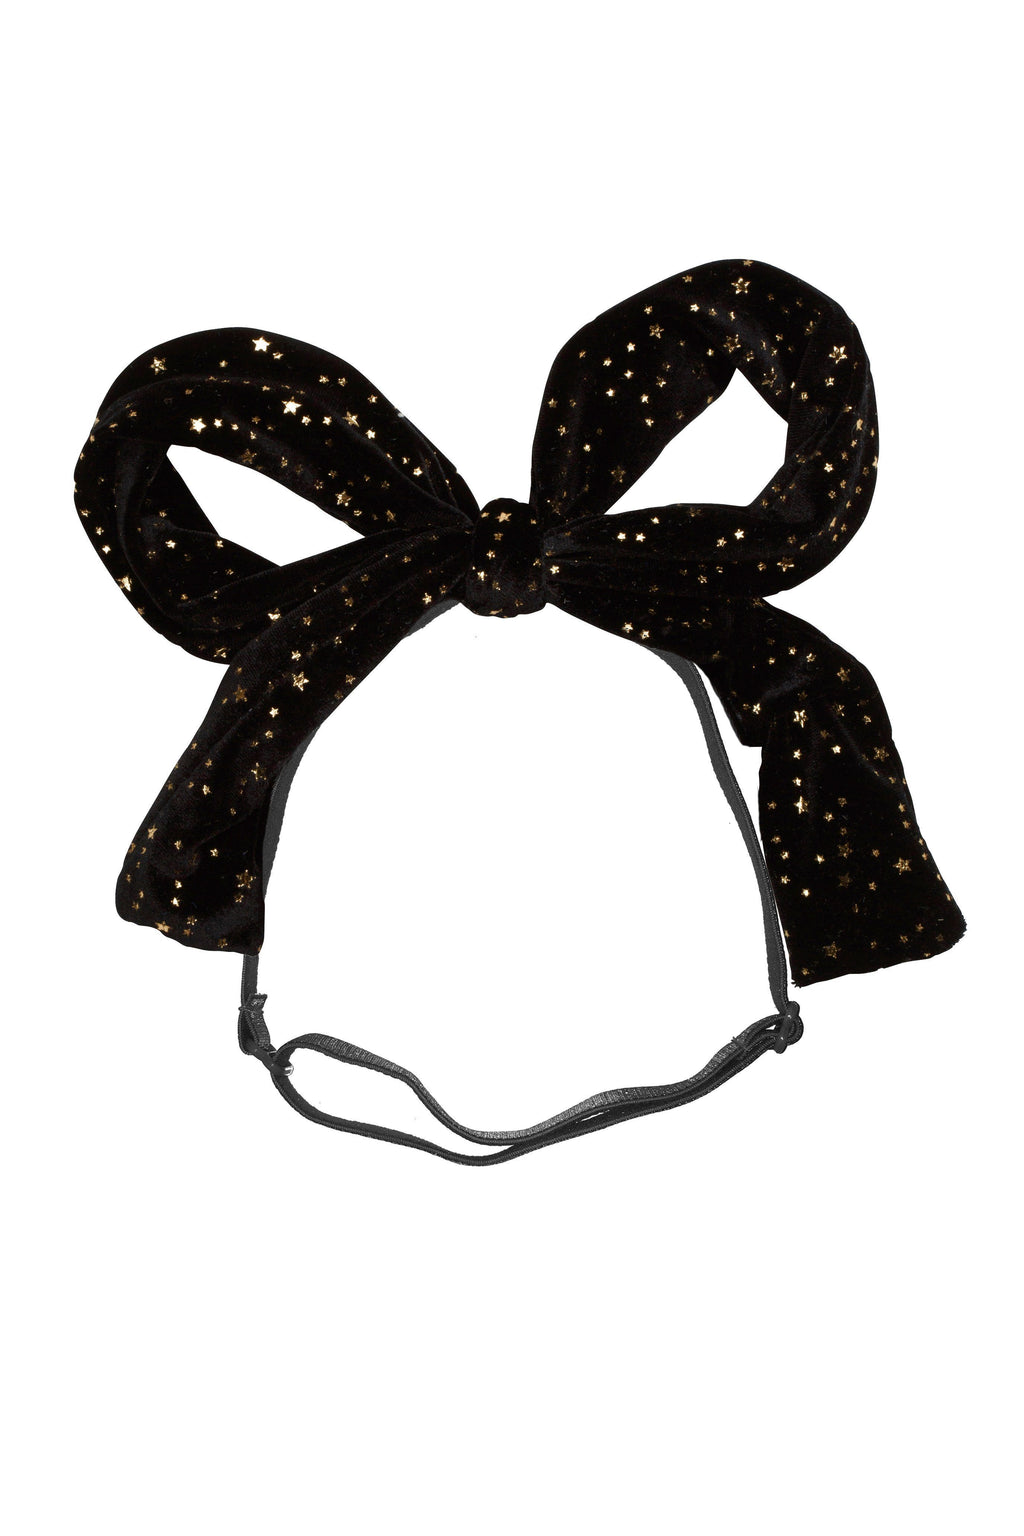 Party Bow Wrap - Black Star Velvet - PROJECT 6, modest fashion